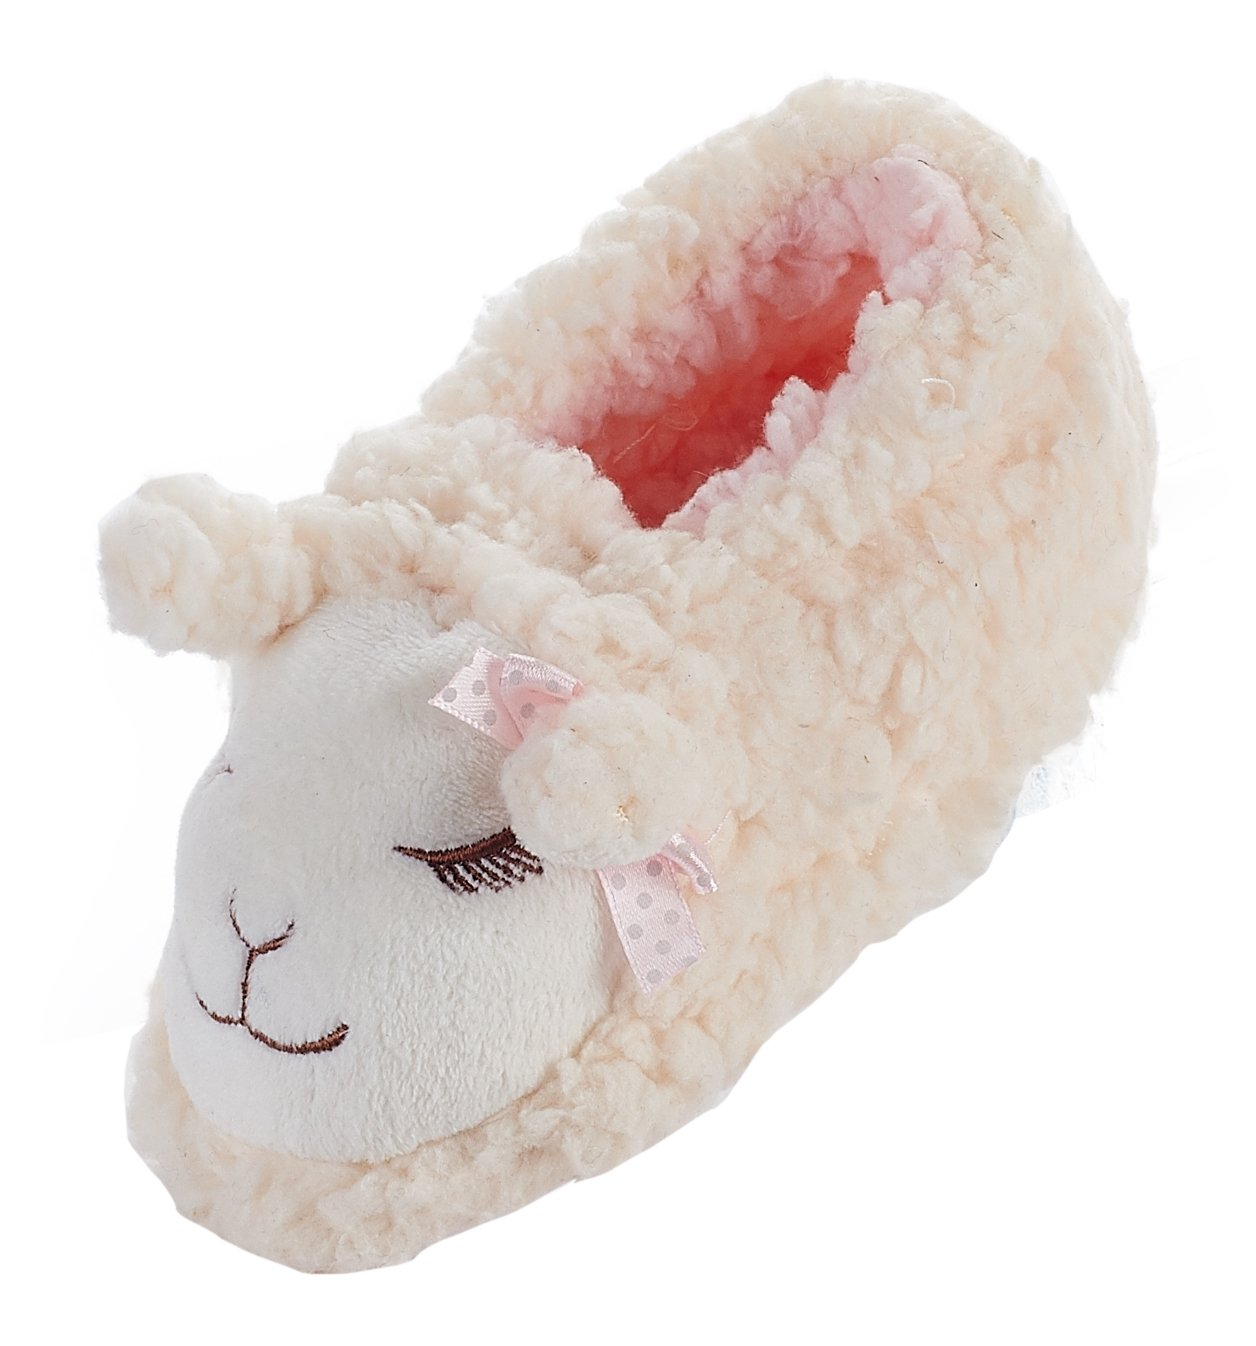 LA PLAGE Child Lamb Antiskid Cotton Household Warm Cartoon Slippers Size Toddler 8 US Creamy